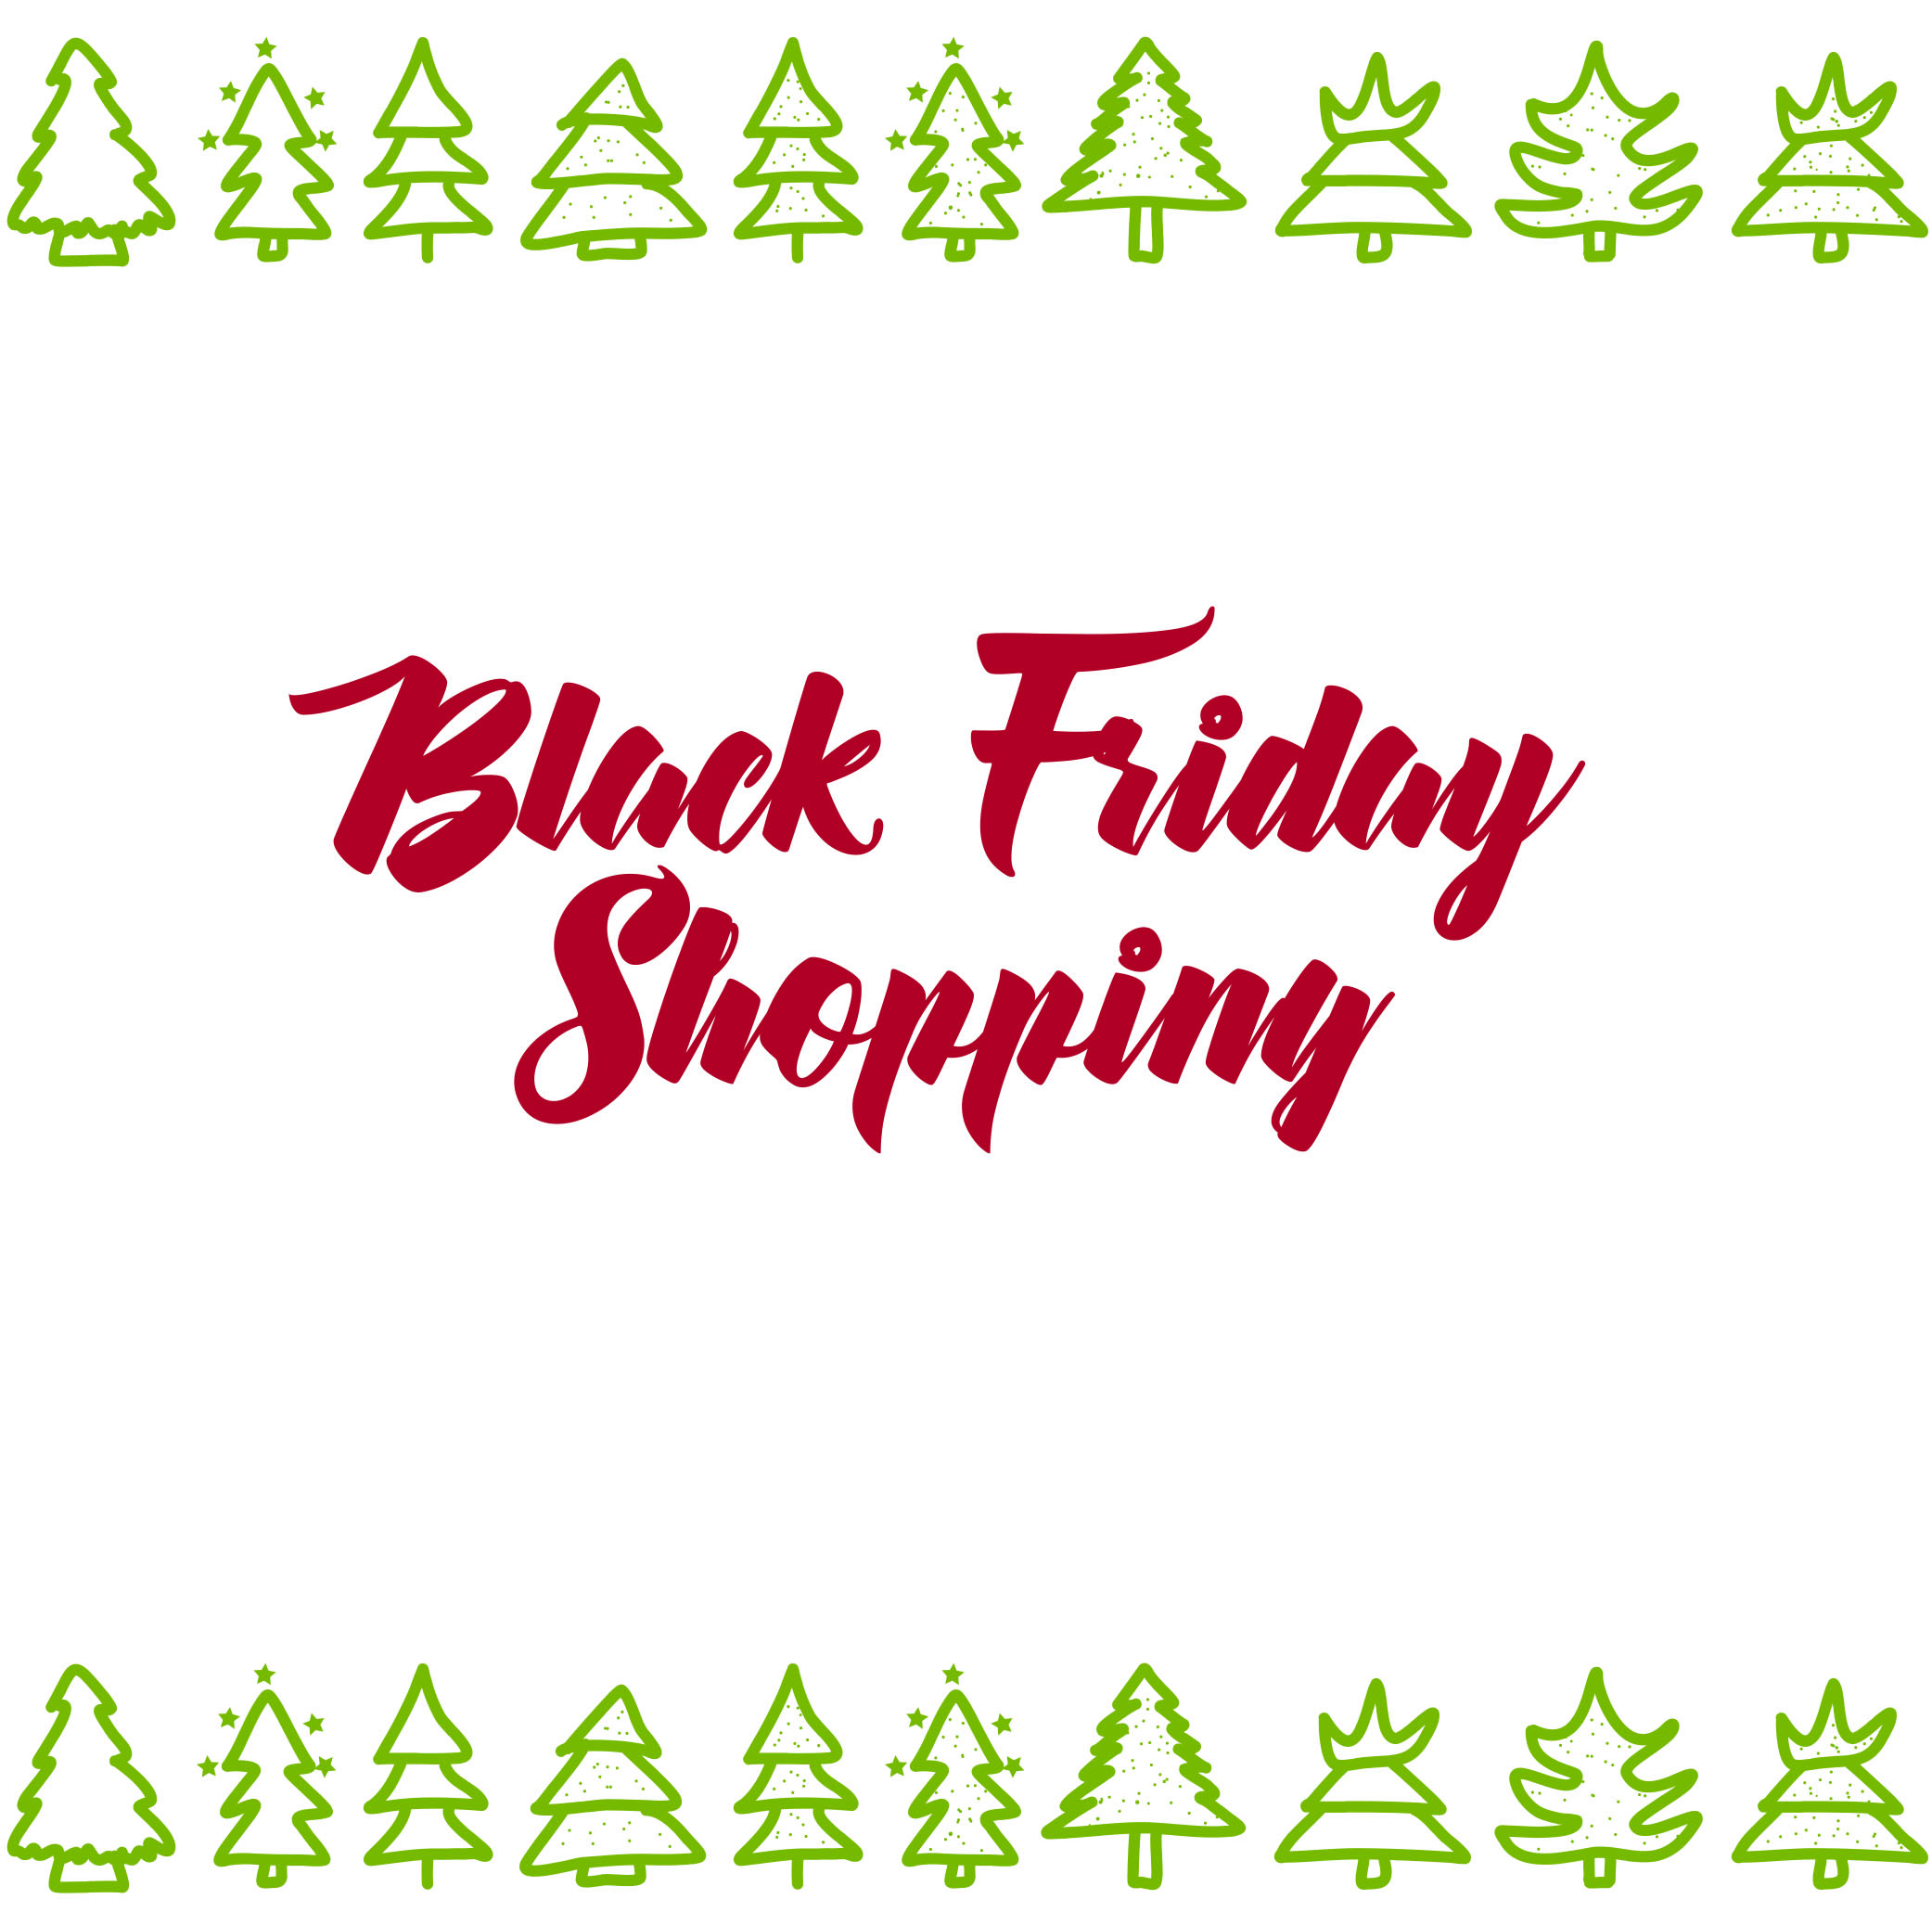 Black Friday Shopping Black Friday Shopping Historic Downtown Cartersville Ga